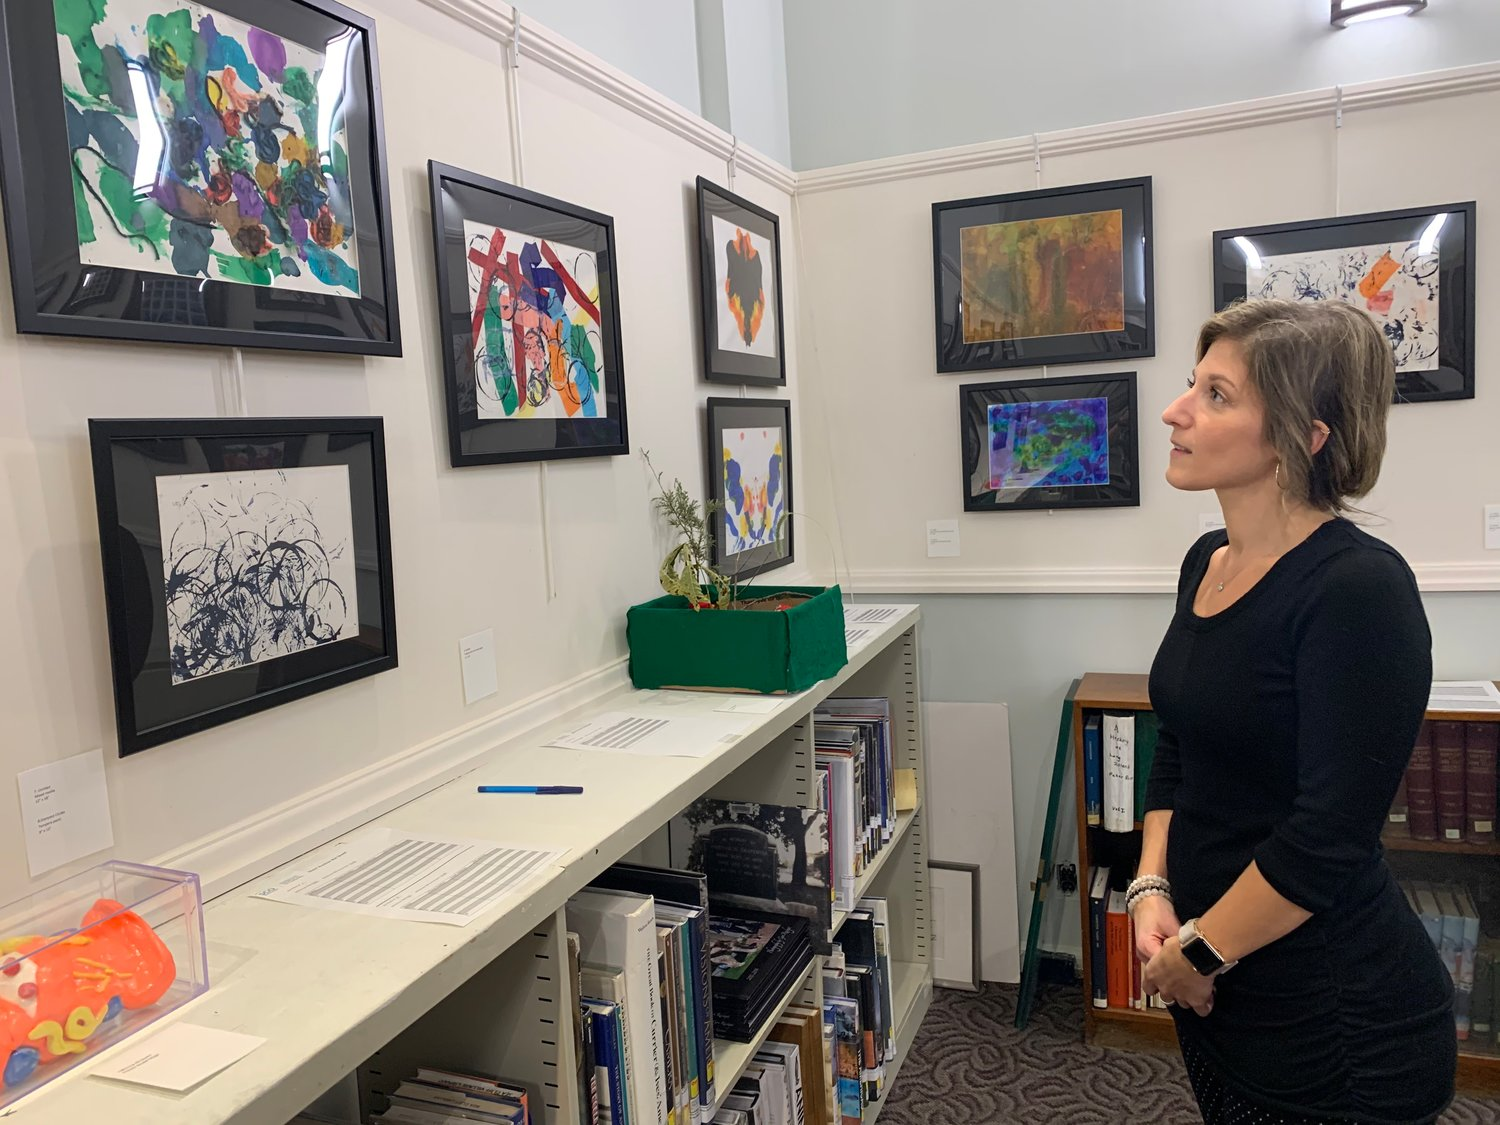 Clinical art therapist Suzanna Shayer is proud to display the artwork made by young people with intellectual disabilities at SCO.